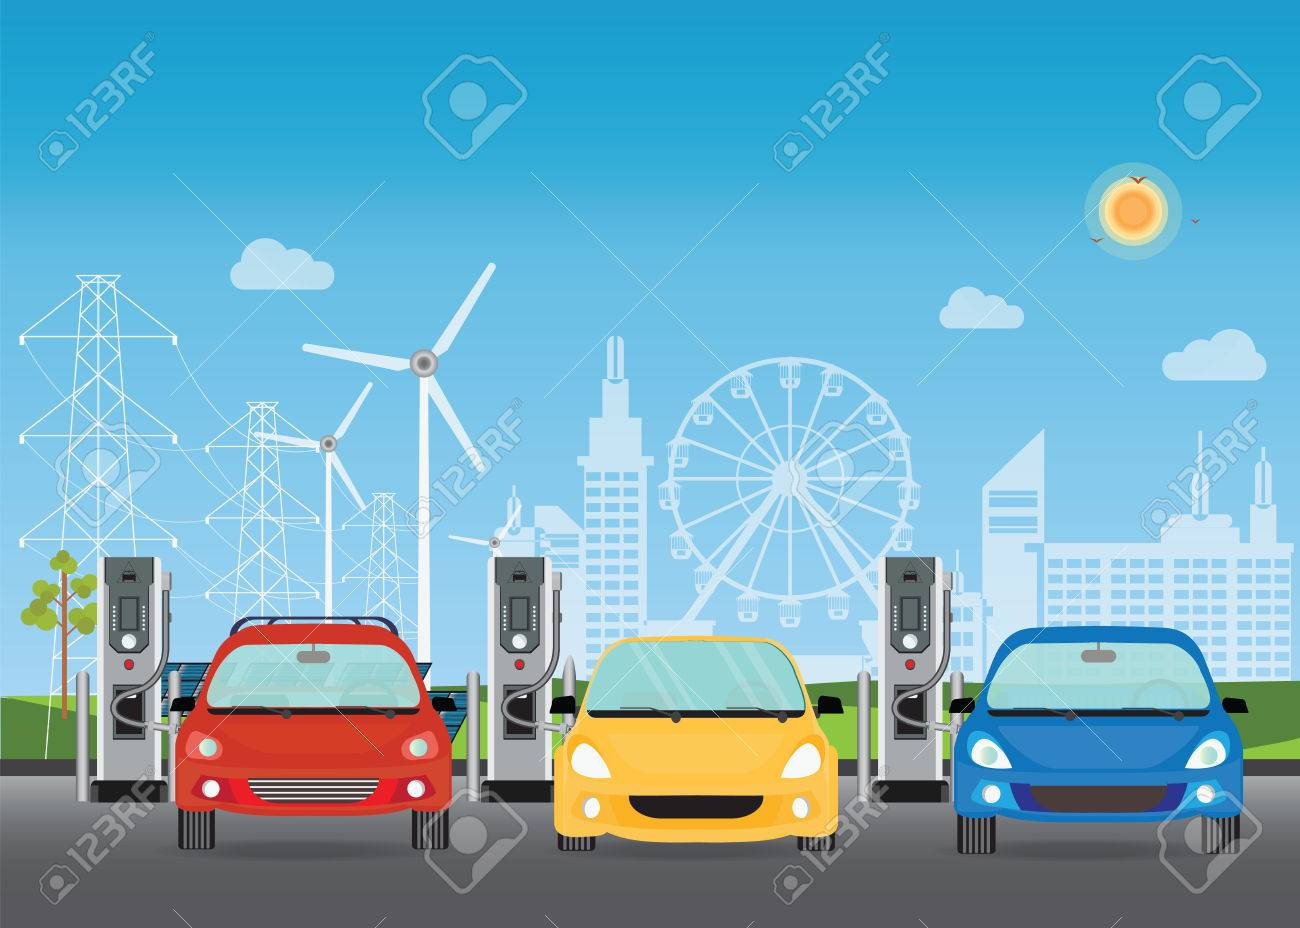 Electric cars charging at the charger station, the solar panels and wind turbines on City building skyline background,Eco green city theme conceptual vector illustration. - 82691142